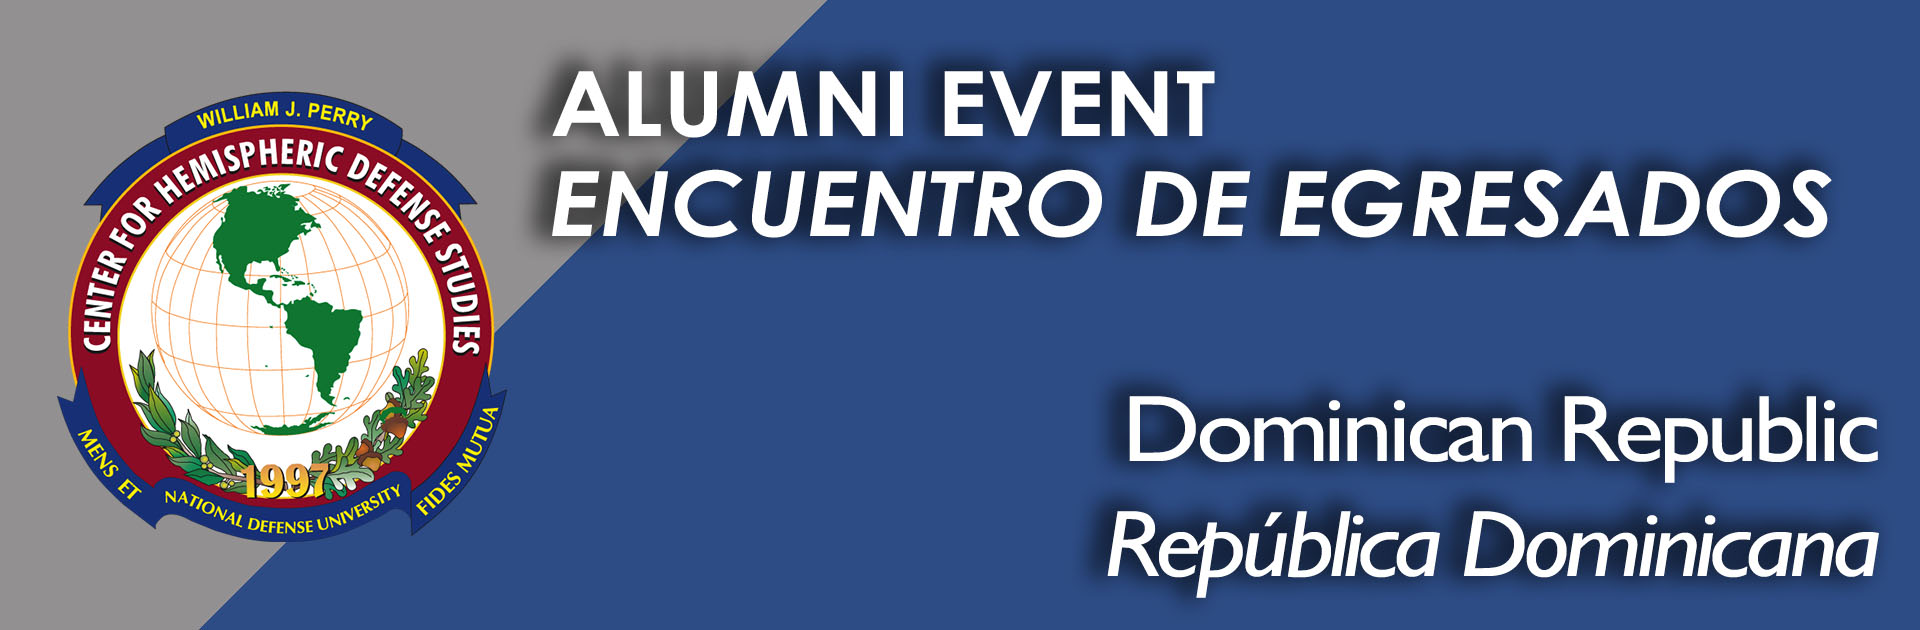 Event Banner - DR